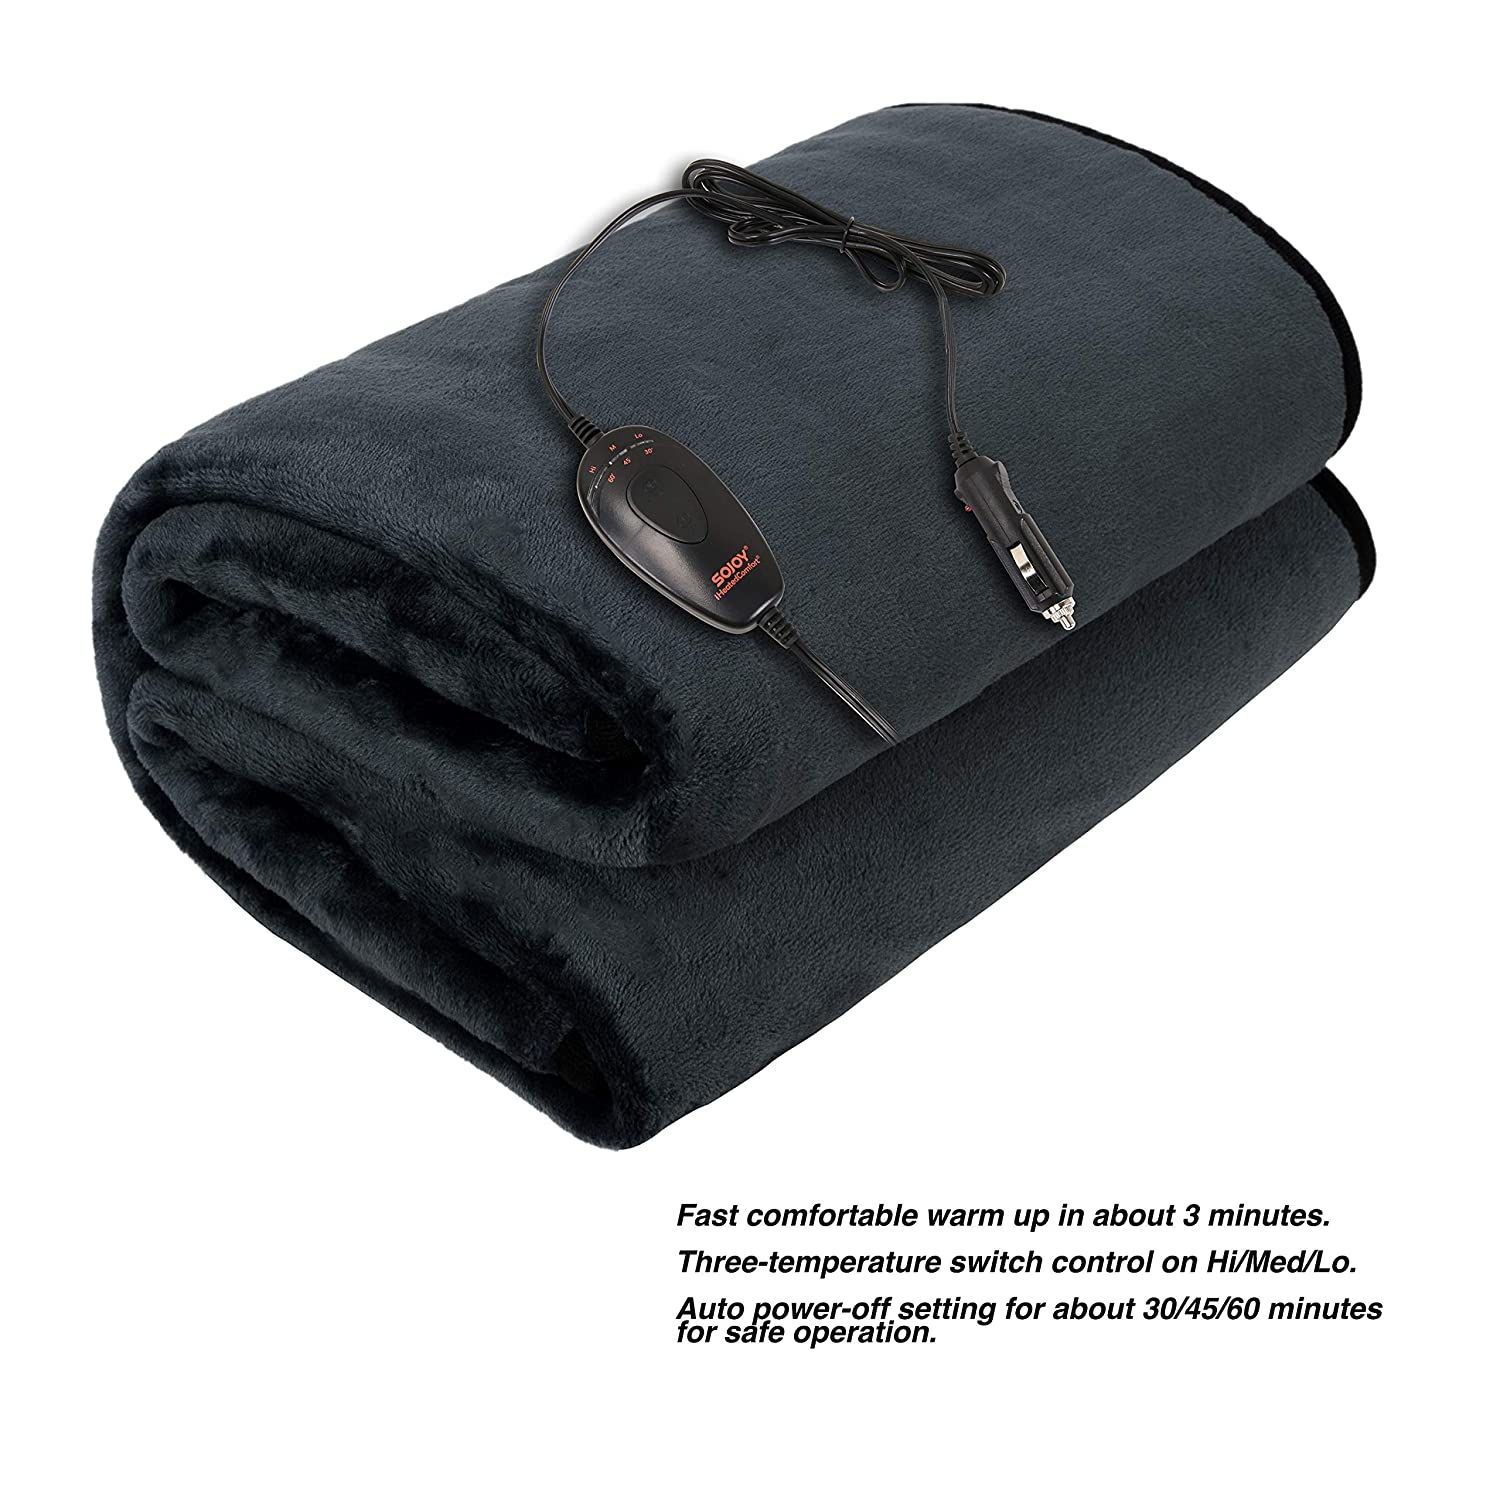 12V Heated Travel Washable Heated Electric Blanket for Car Dark Gray Multiple Time Periods Control and Multiple SJ734R012N Boats or RV with Smart Multifunctional High//Med//Low Temp Truck